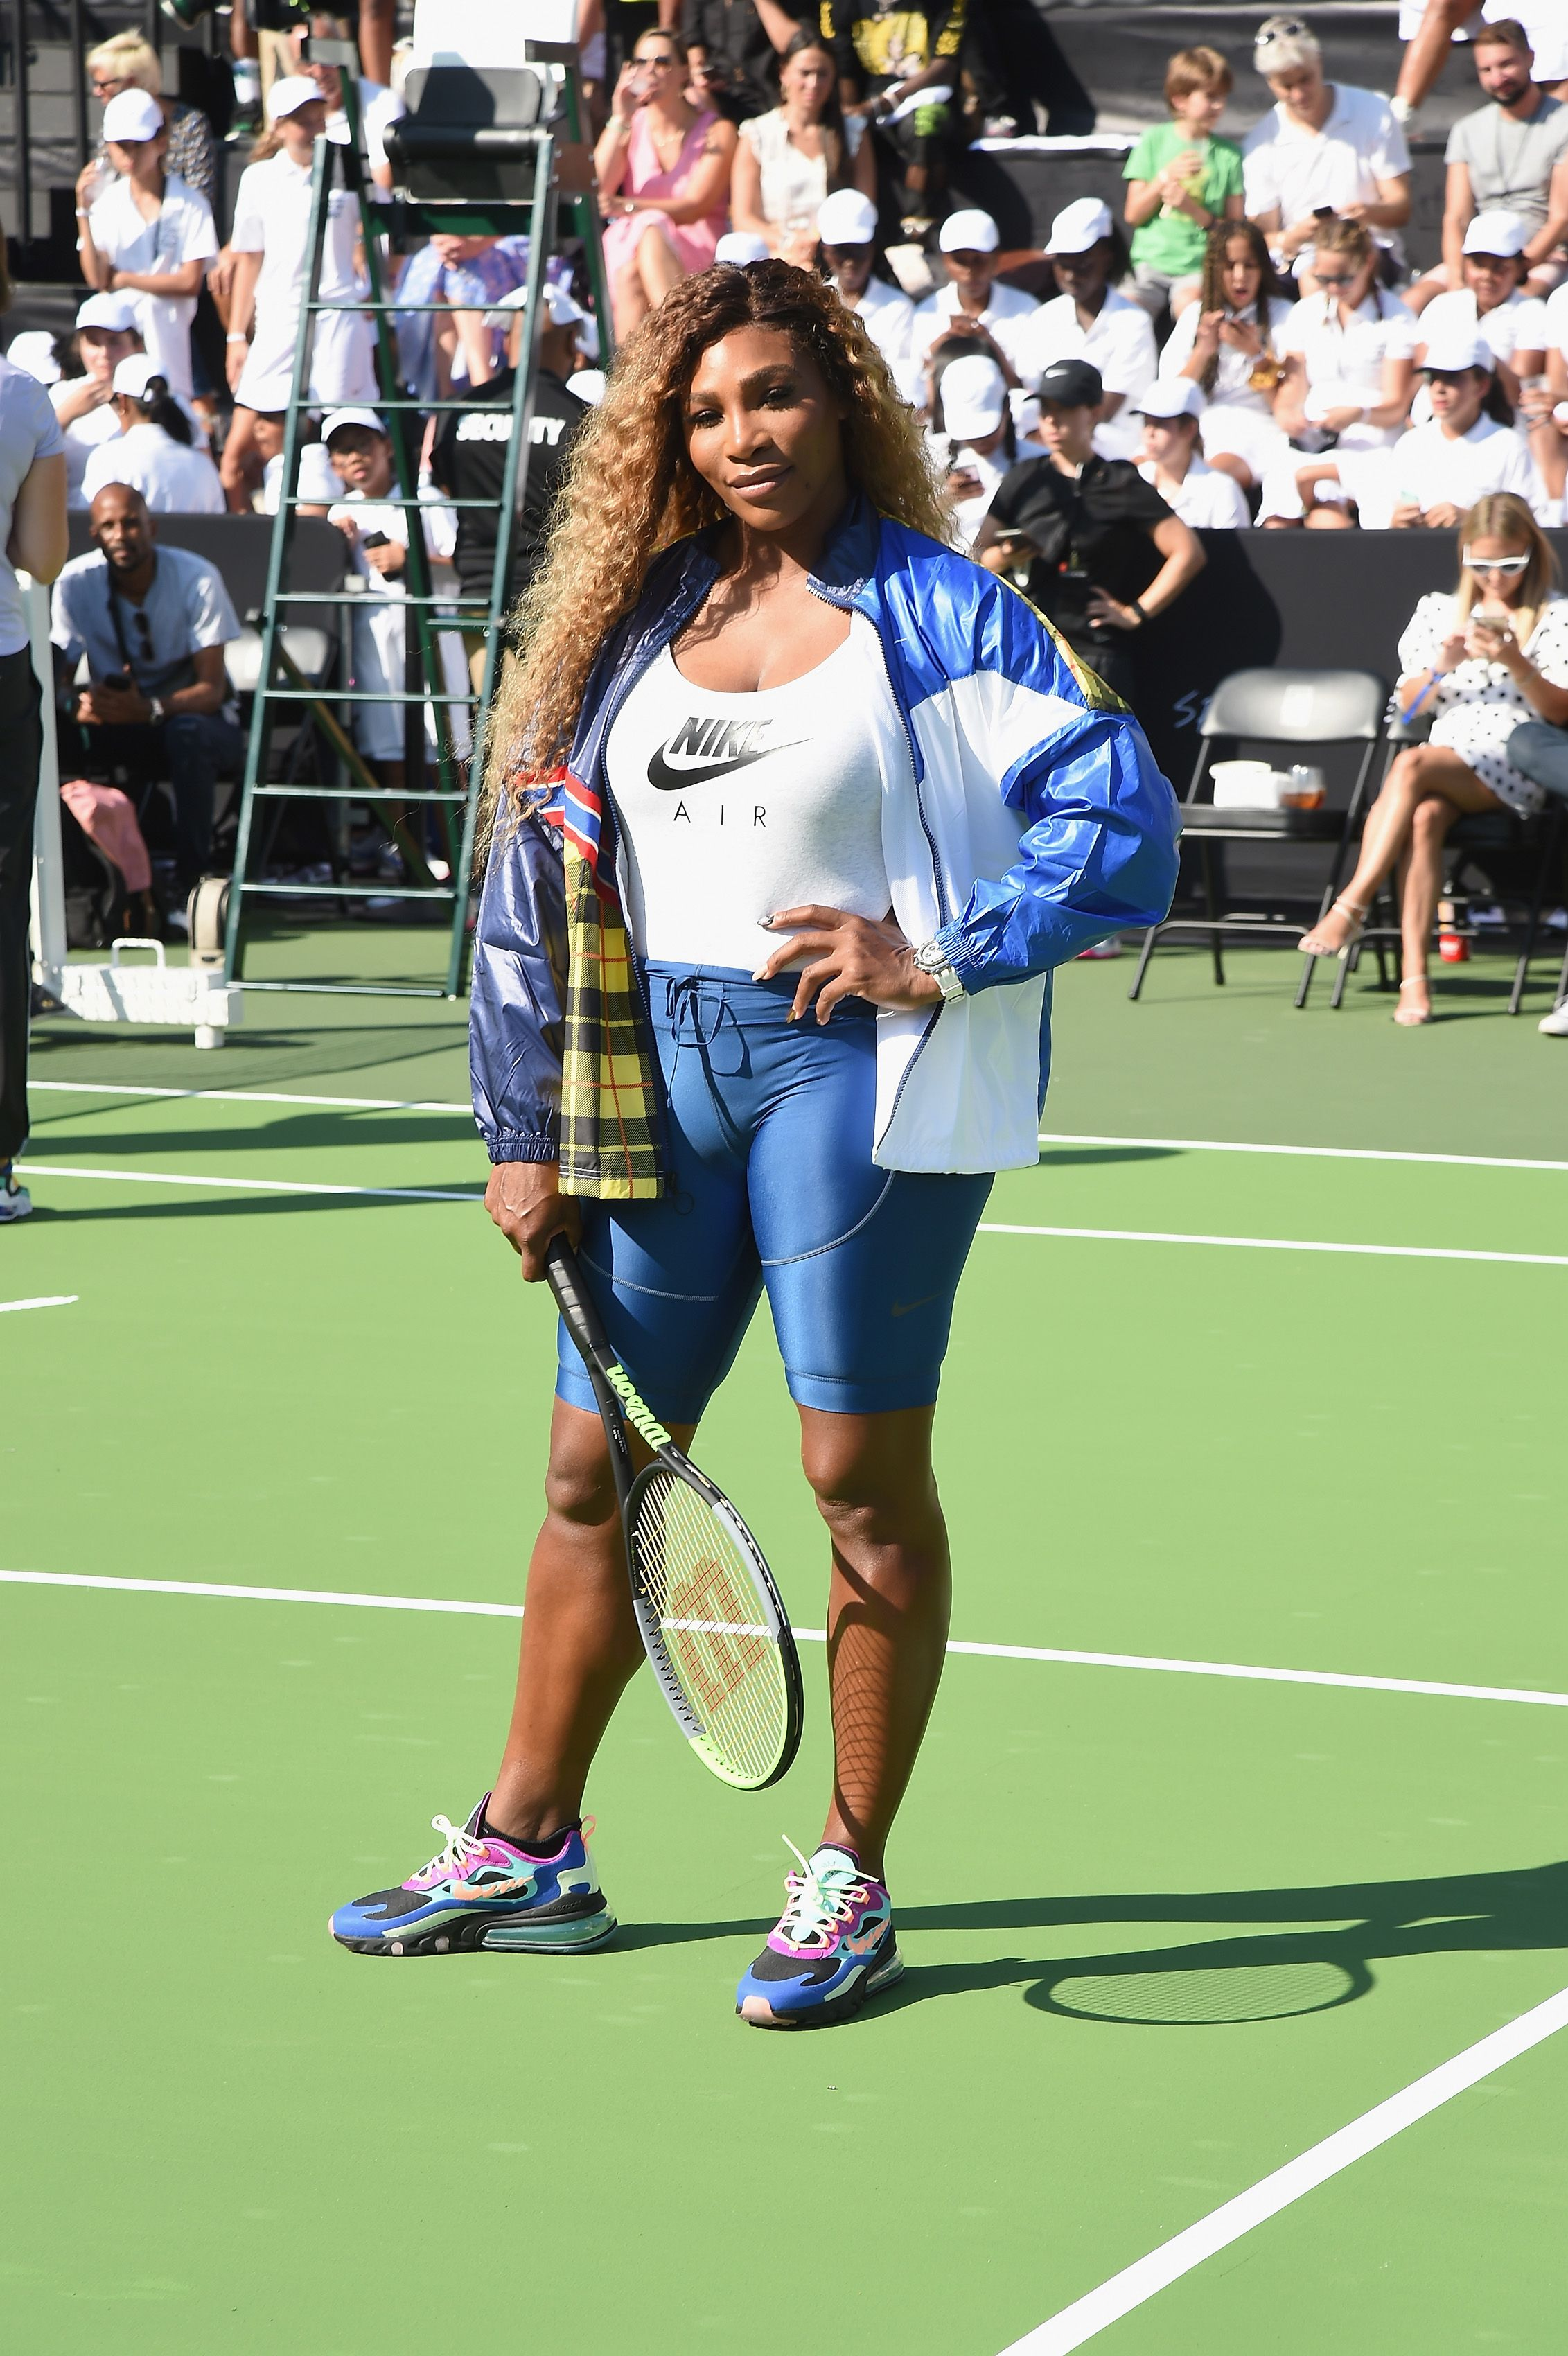 Serena Williams' Latest On-Court Look Is All About The Cycling Shorts